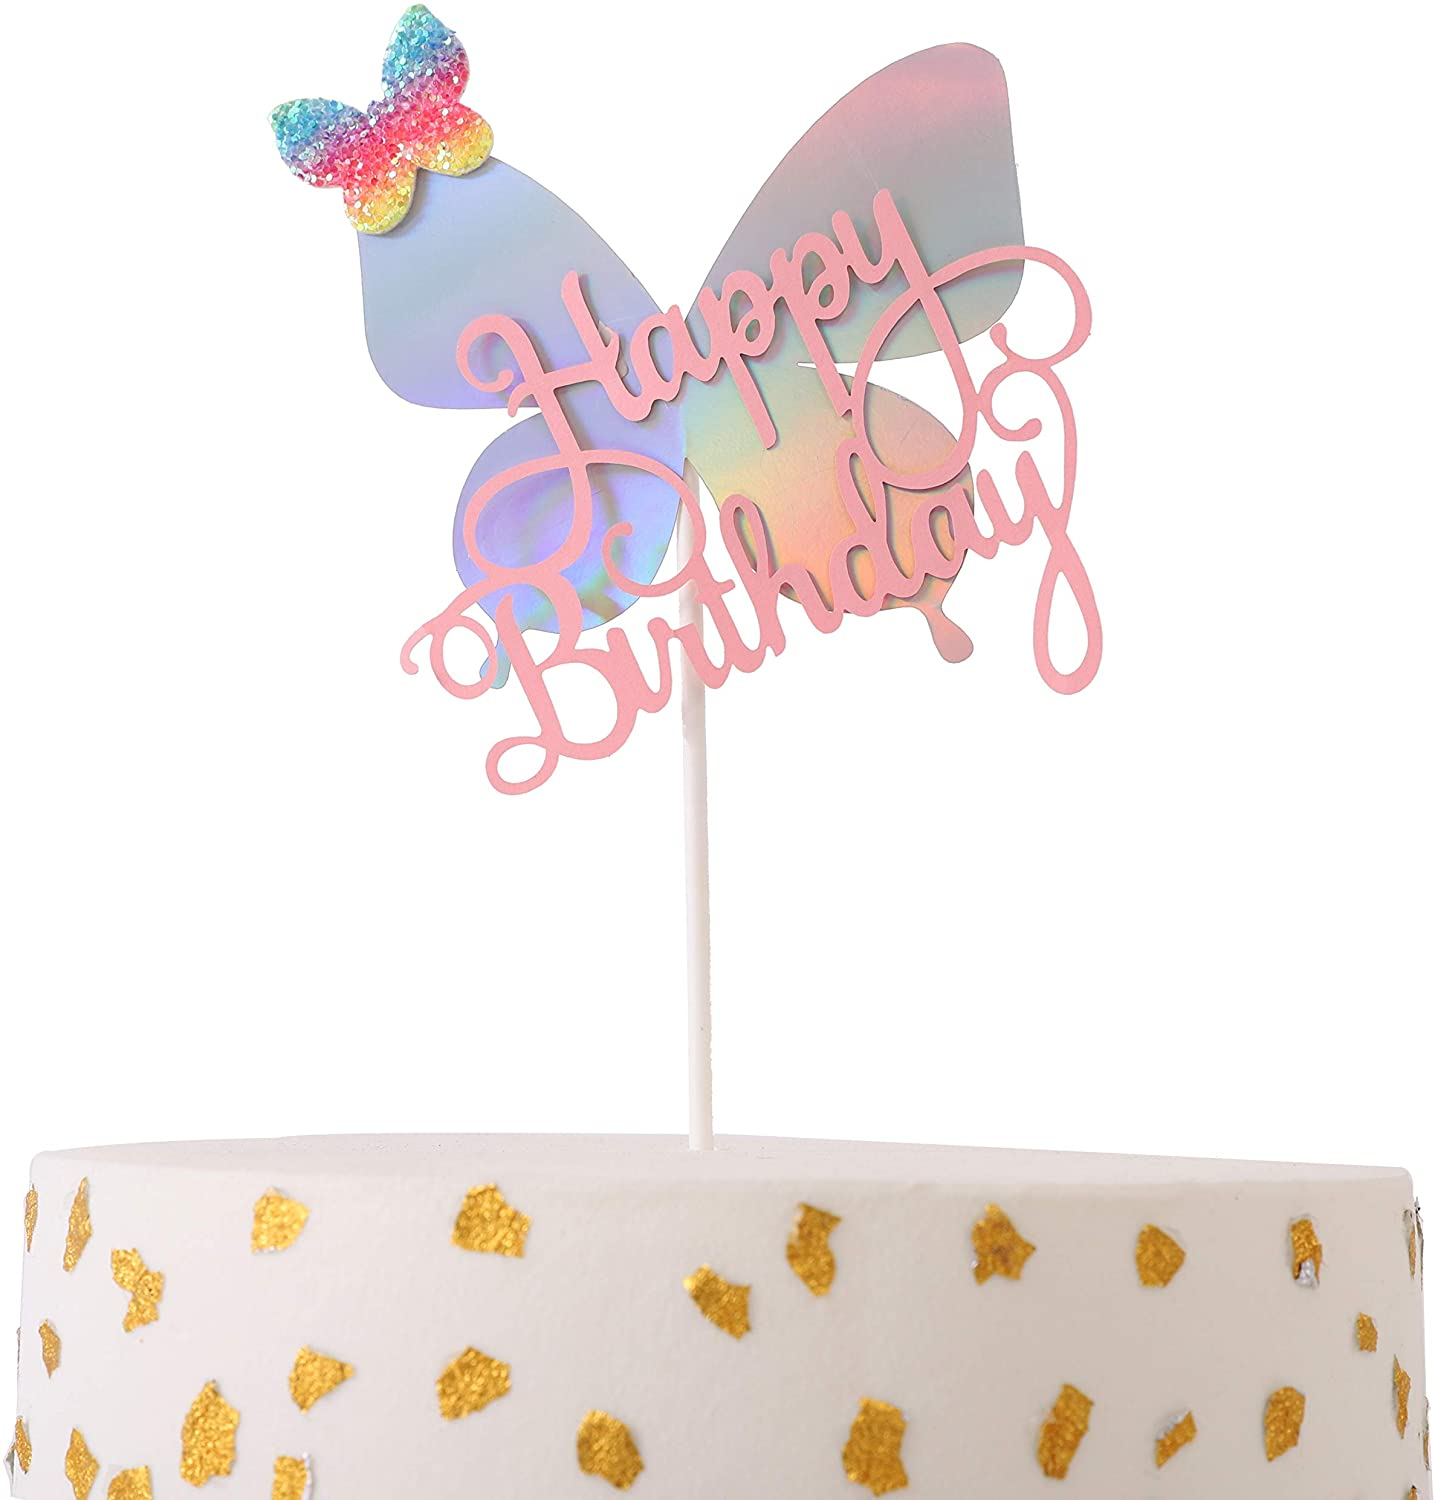 Happy Birthday Topper for Cake - One Cake Topper Birthday Decoration - DIY Happy Birthday Cake Topper - Butterfly Cake Toppers Happy Birthday - Cake Decorations,Cake Flag Photo Props (Pink)